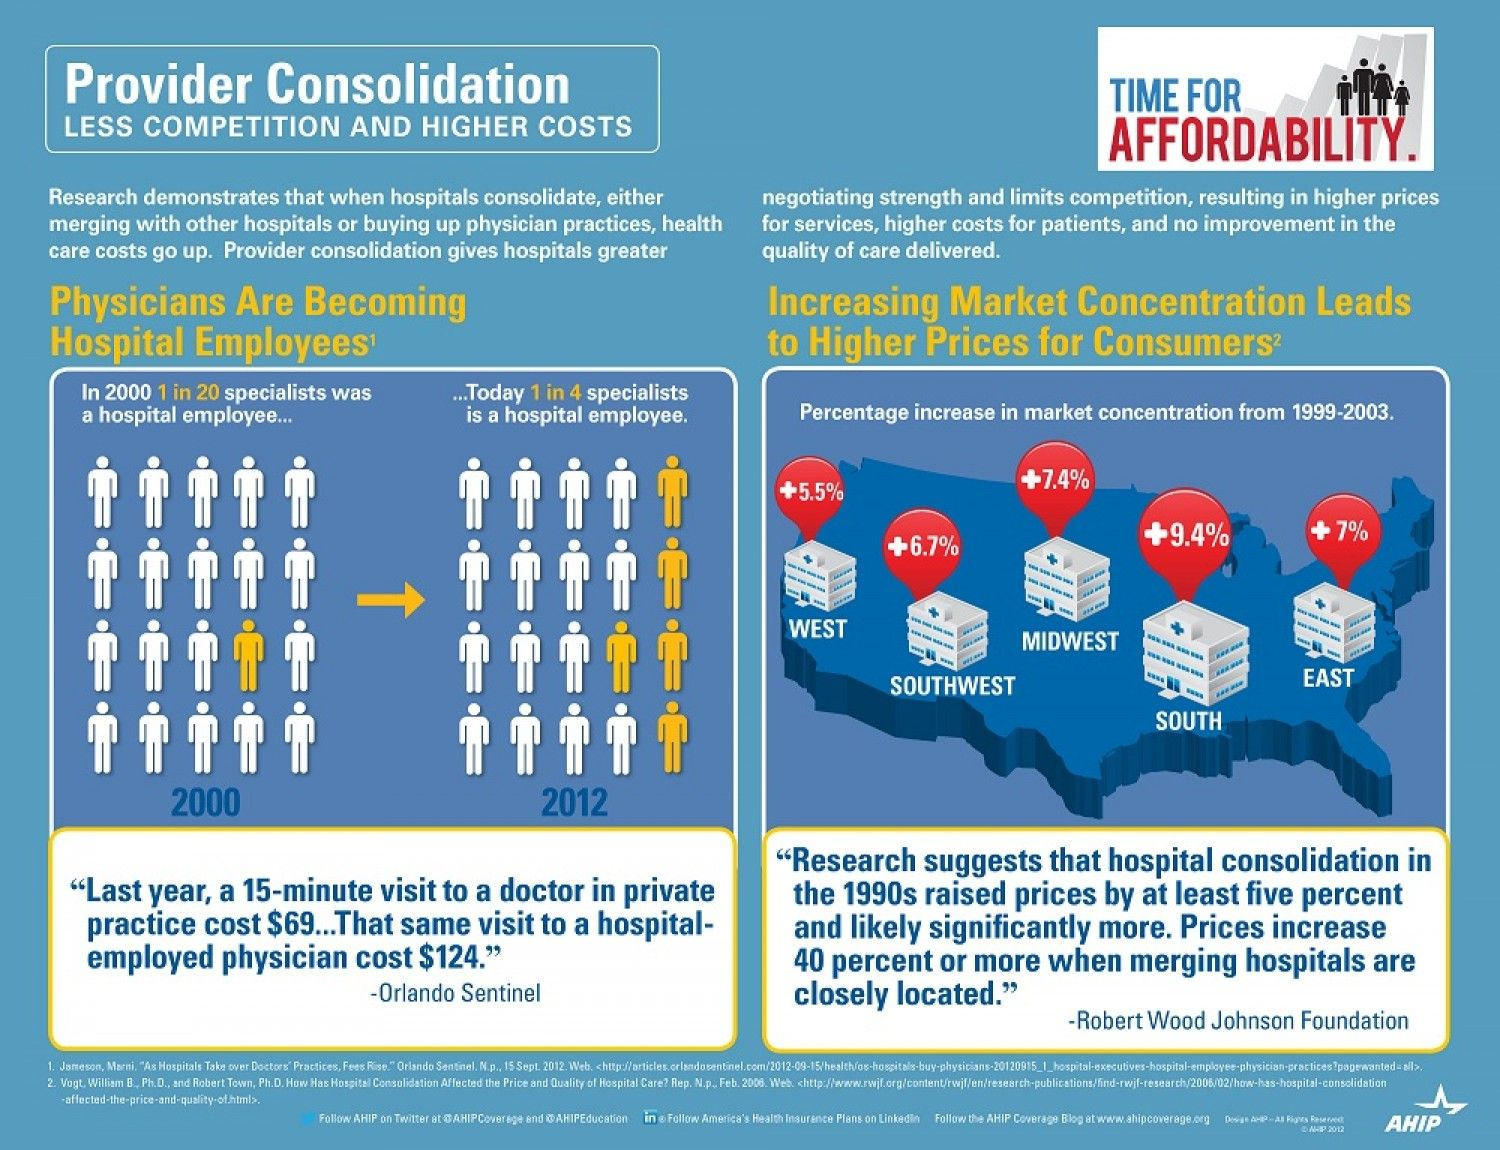 Provider Consolidation Less Competition And Higher Costs New